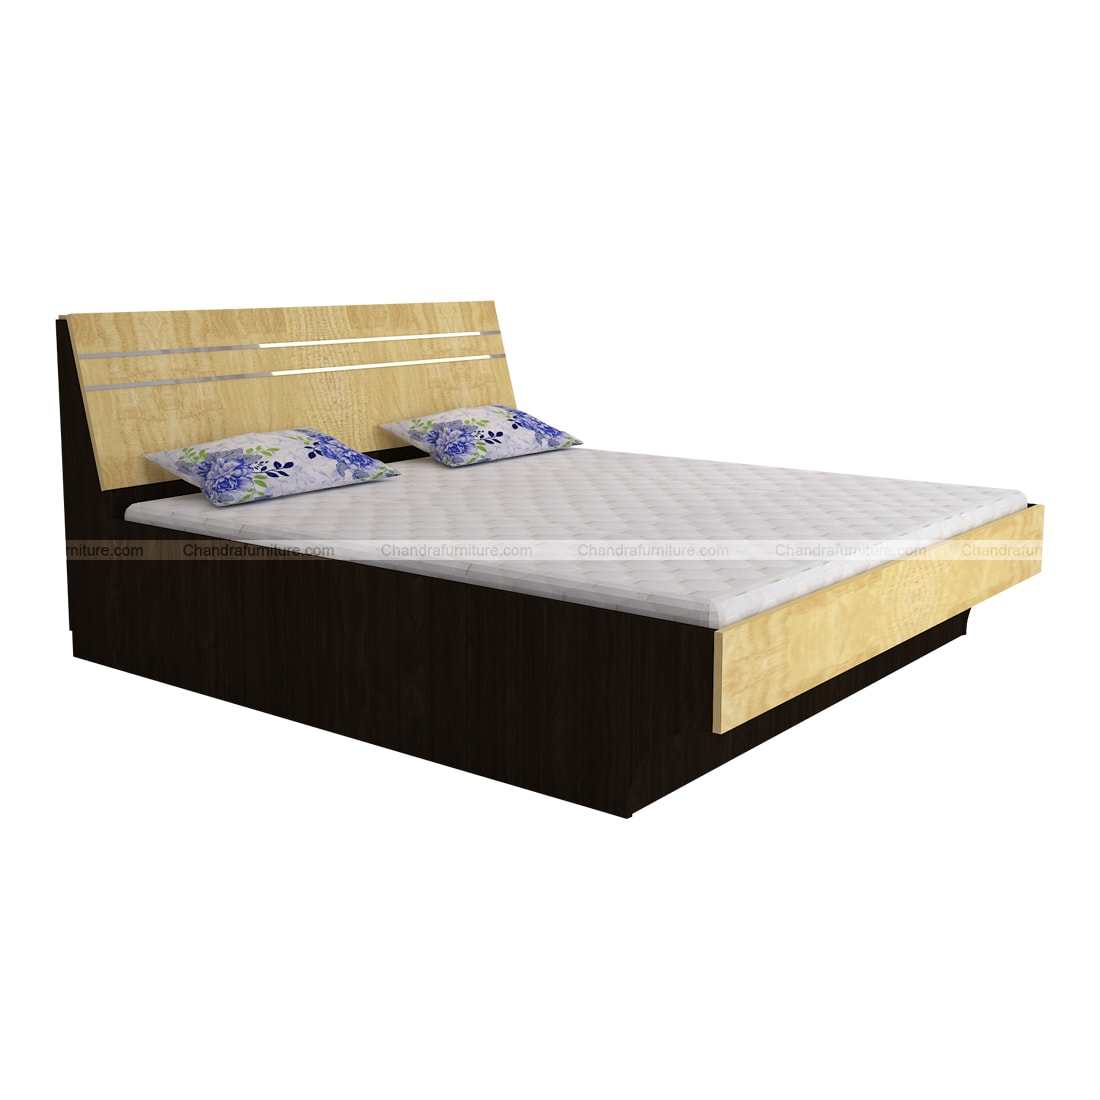 Chandra Furniture King Size Bed - Classic Curve